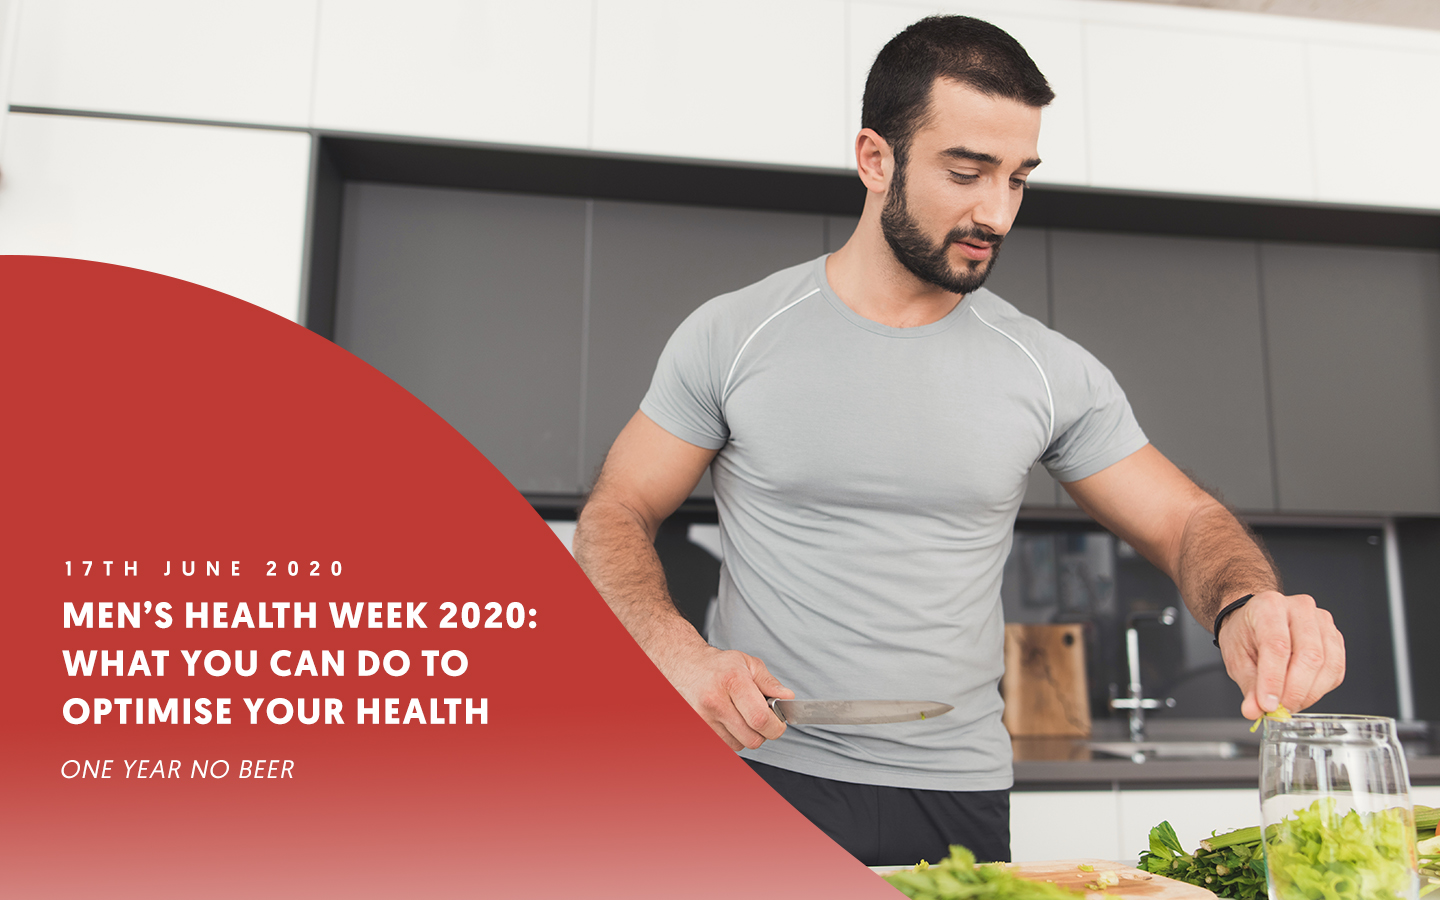 Men's Health Week 2020: What you can do to optimise your health